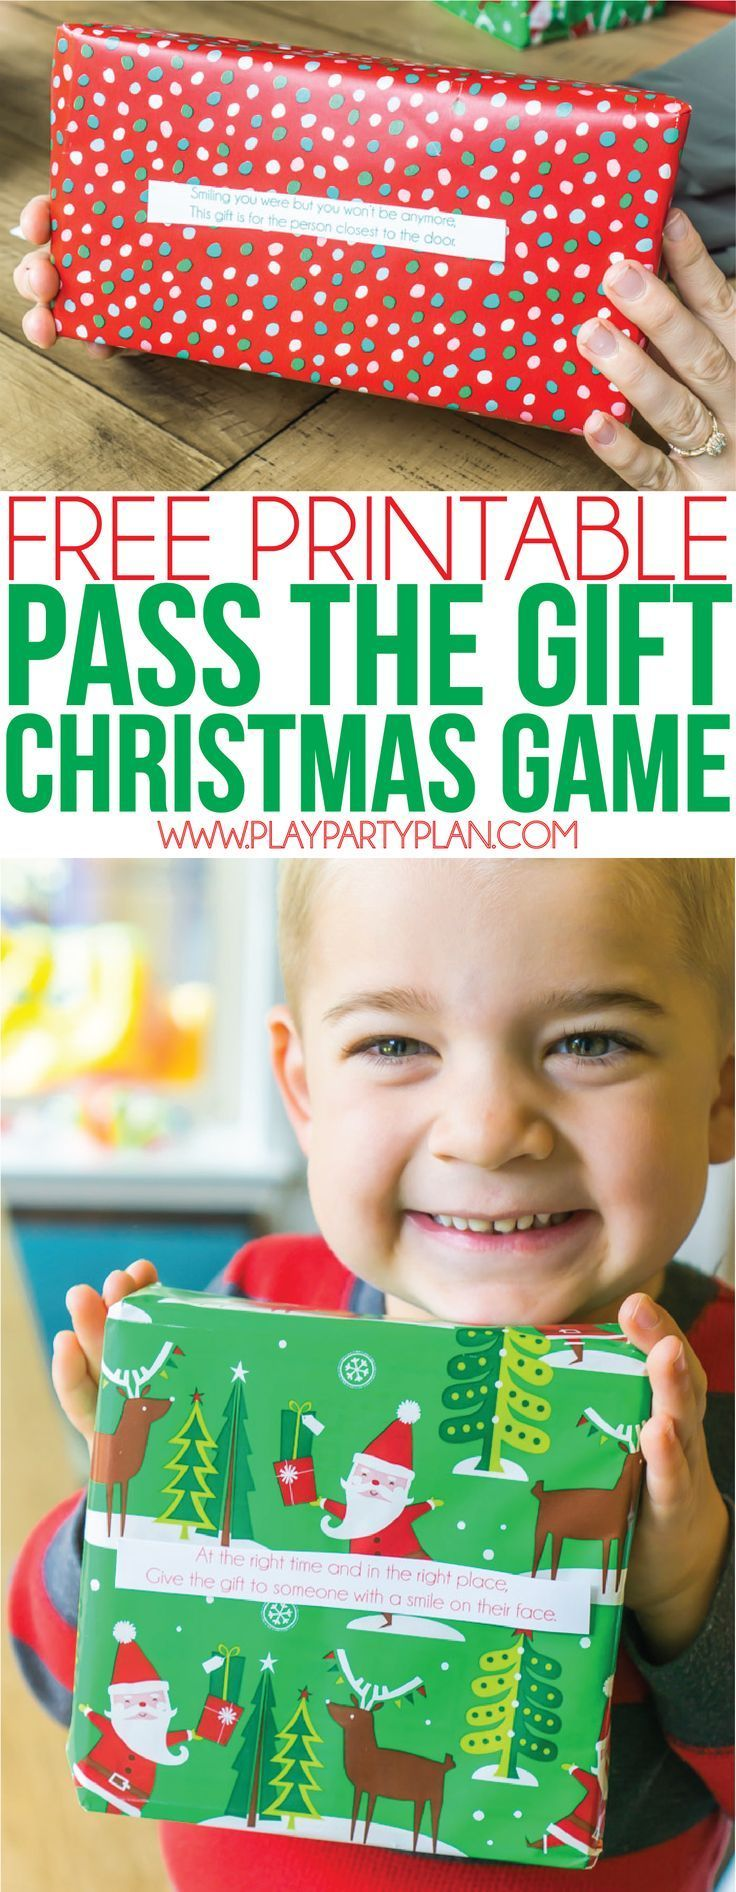 Best 25+ Gift exchange games ideas on Pinterest ...